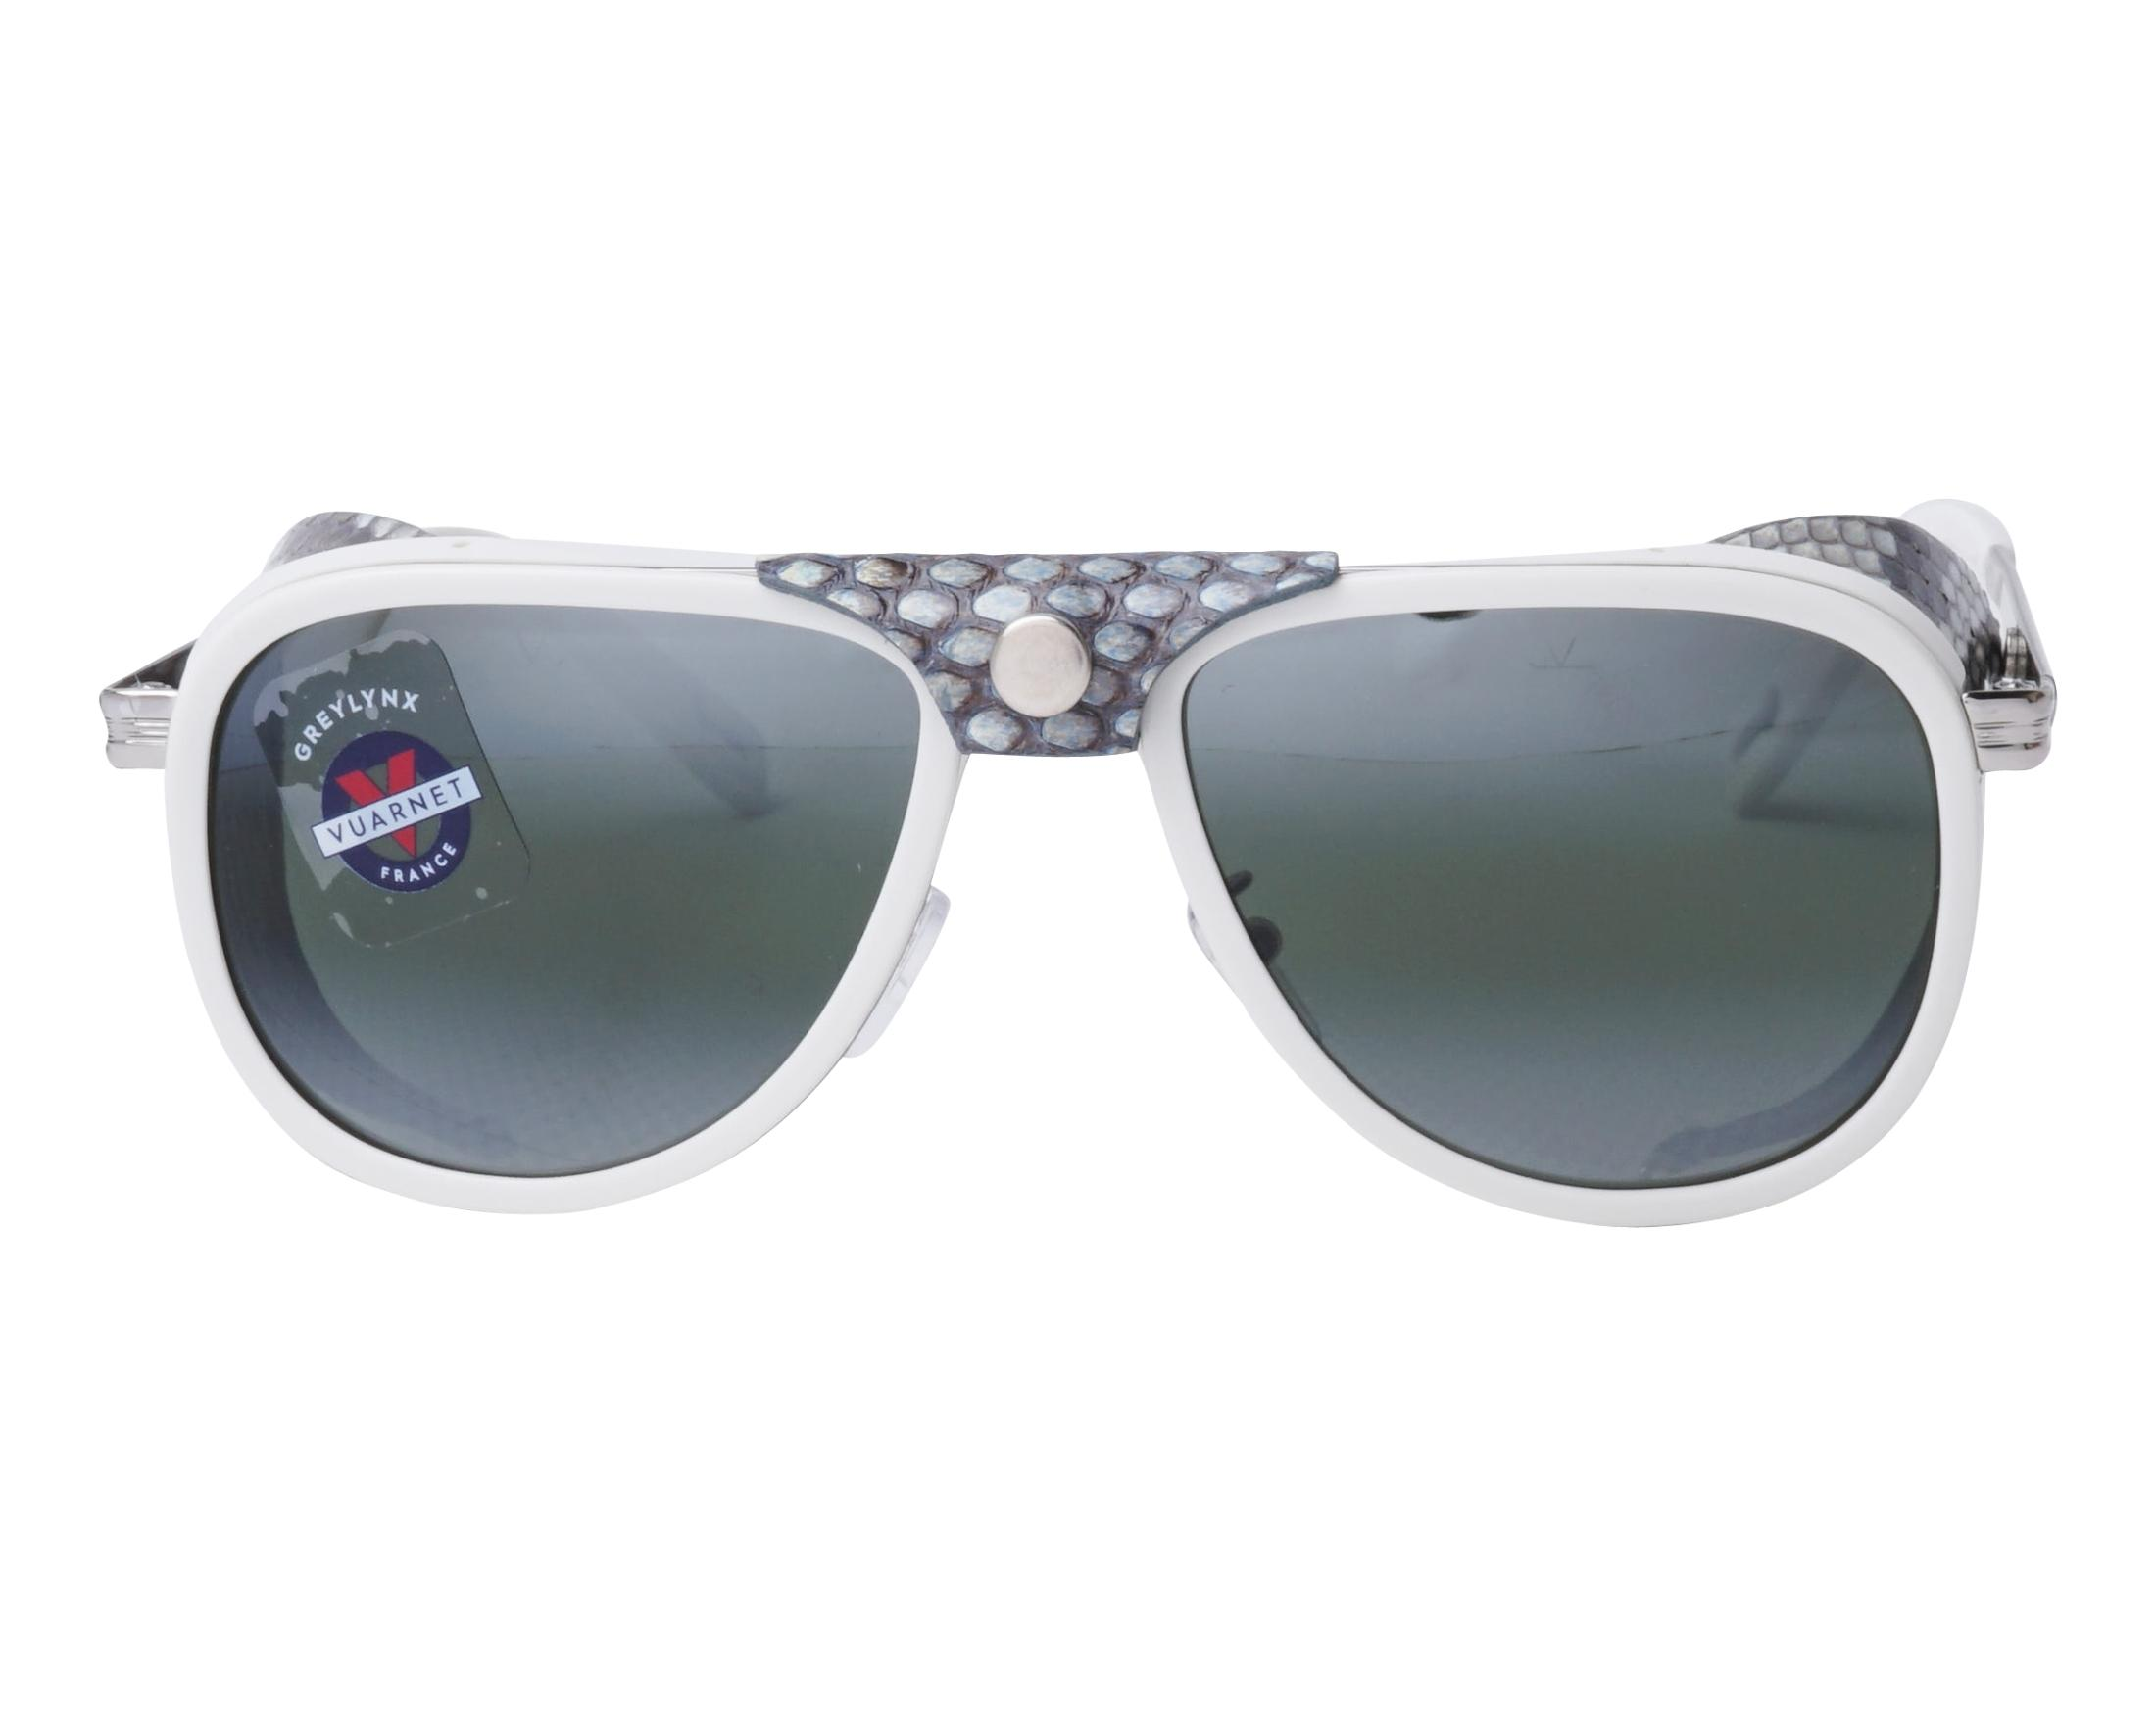 93239cdd01 Sunglasses Vuarnet VL-1315 0017-1136 55-14 White Ruthenium front view